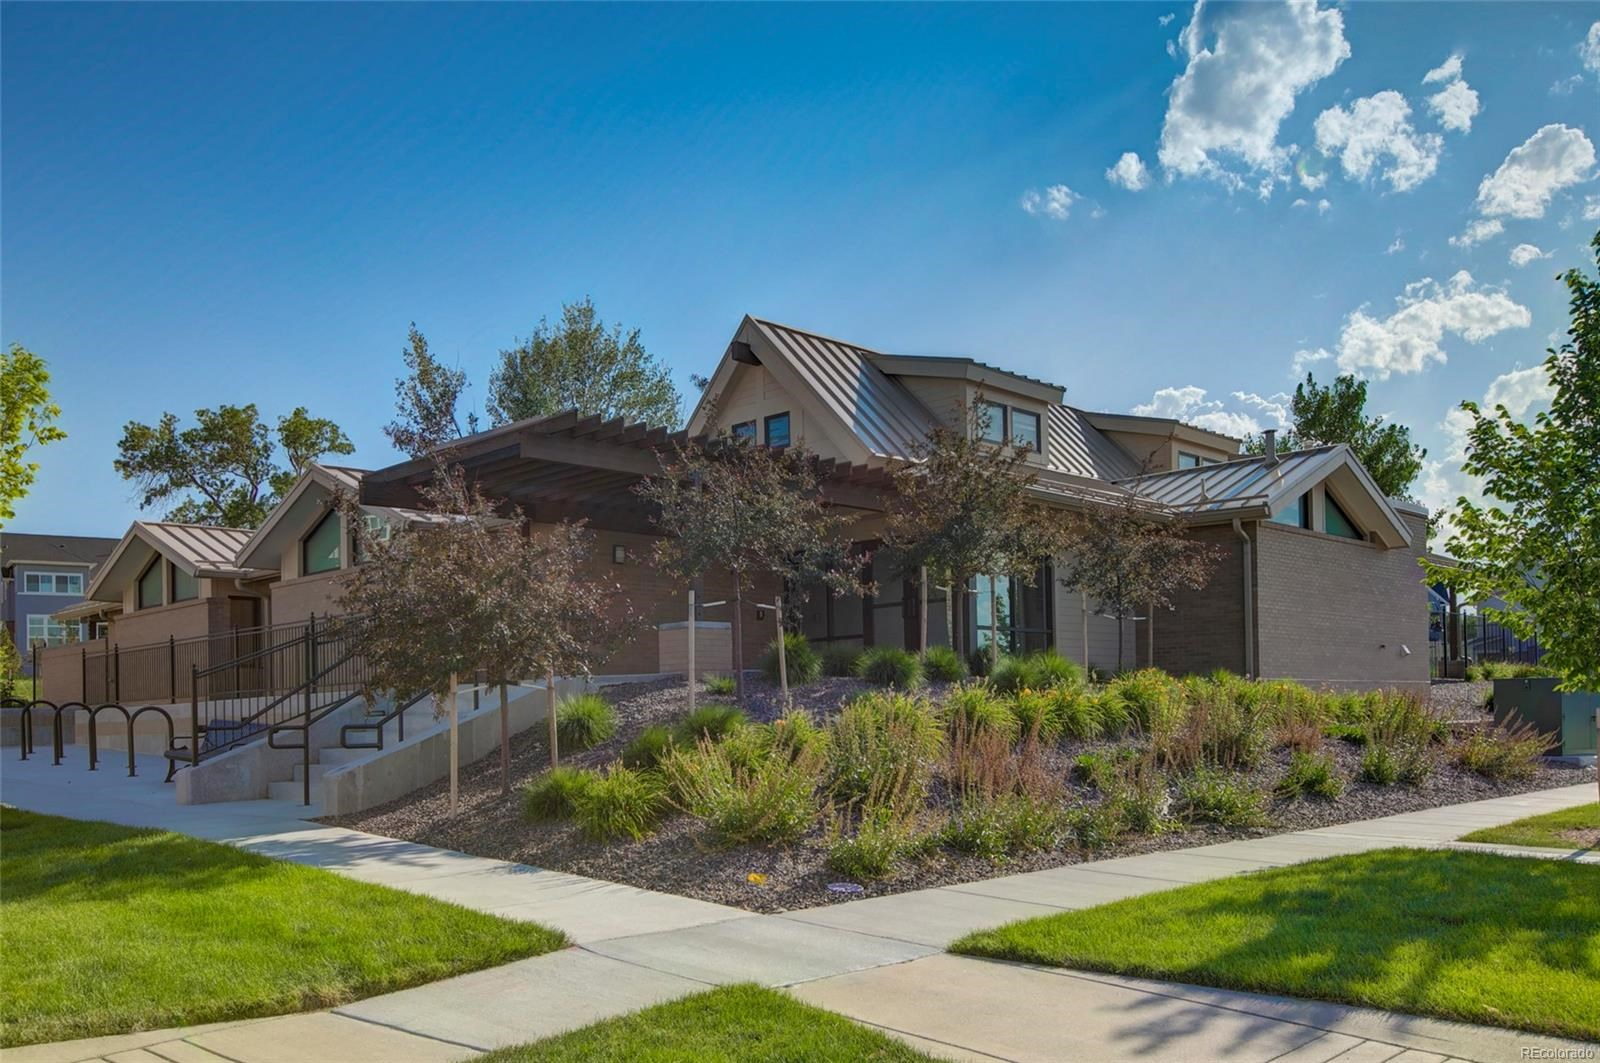 MLS# 1577922 - 36 - 5527 W 97th Court, Westminster, CO 80020